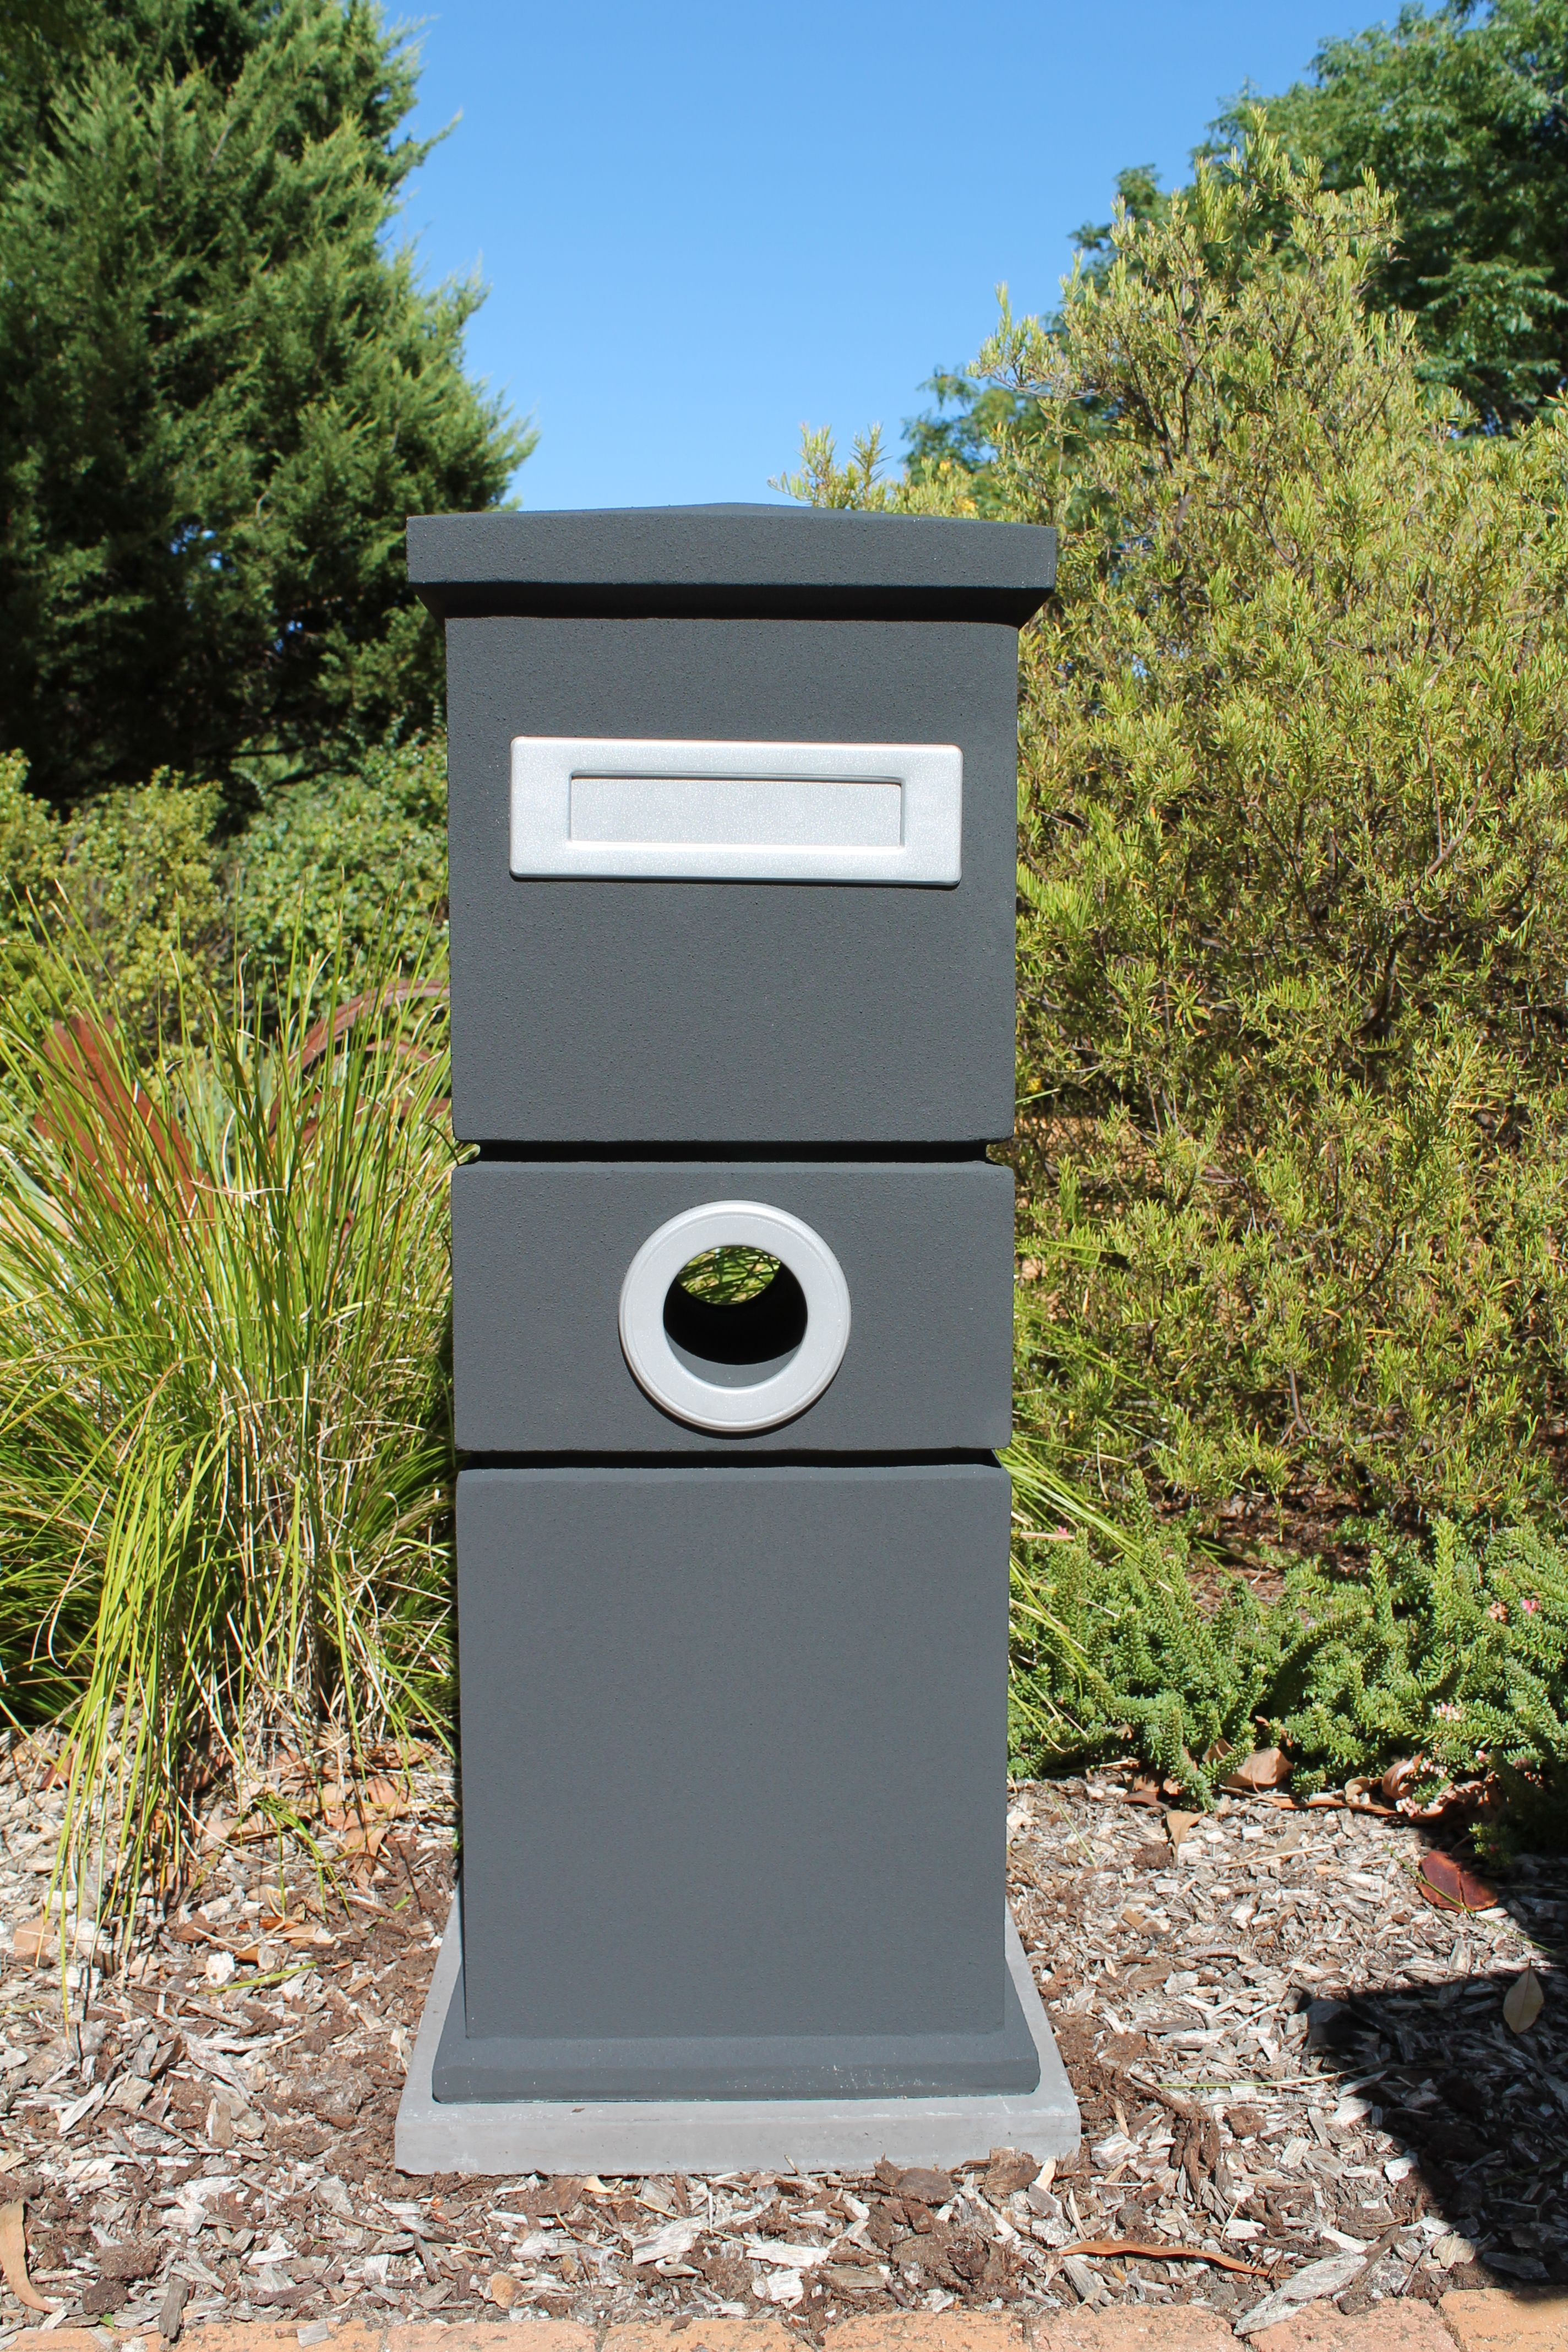 Just arrived! Check out our fab new letterboxes!